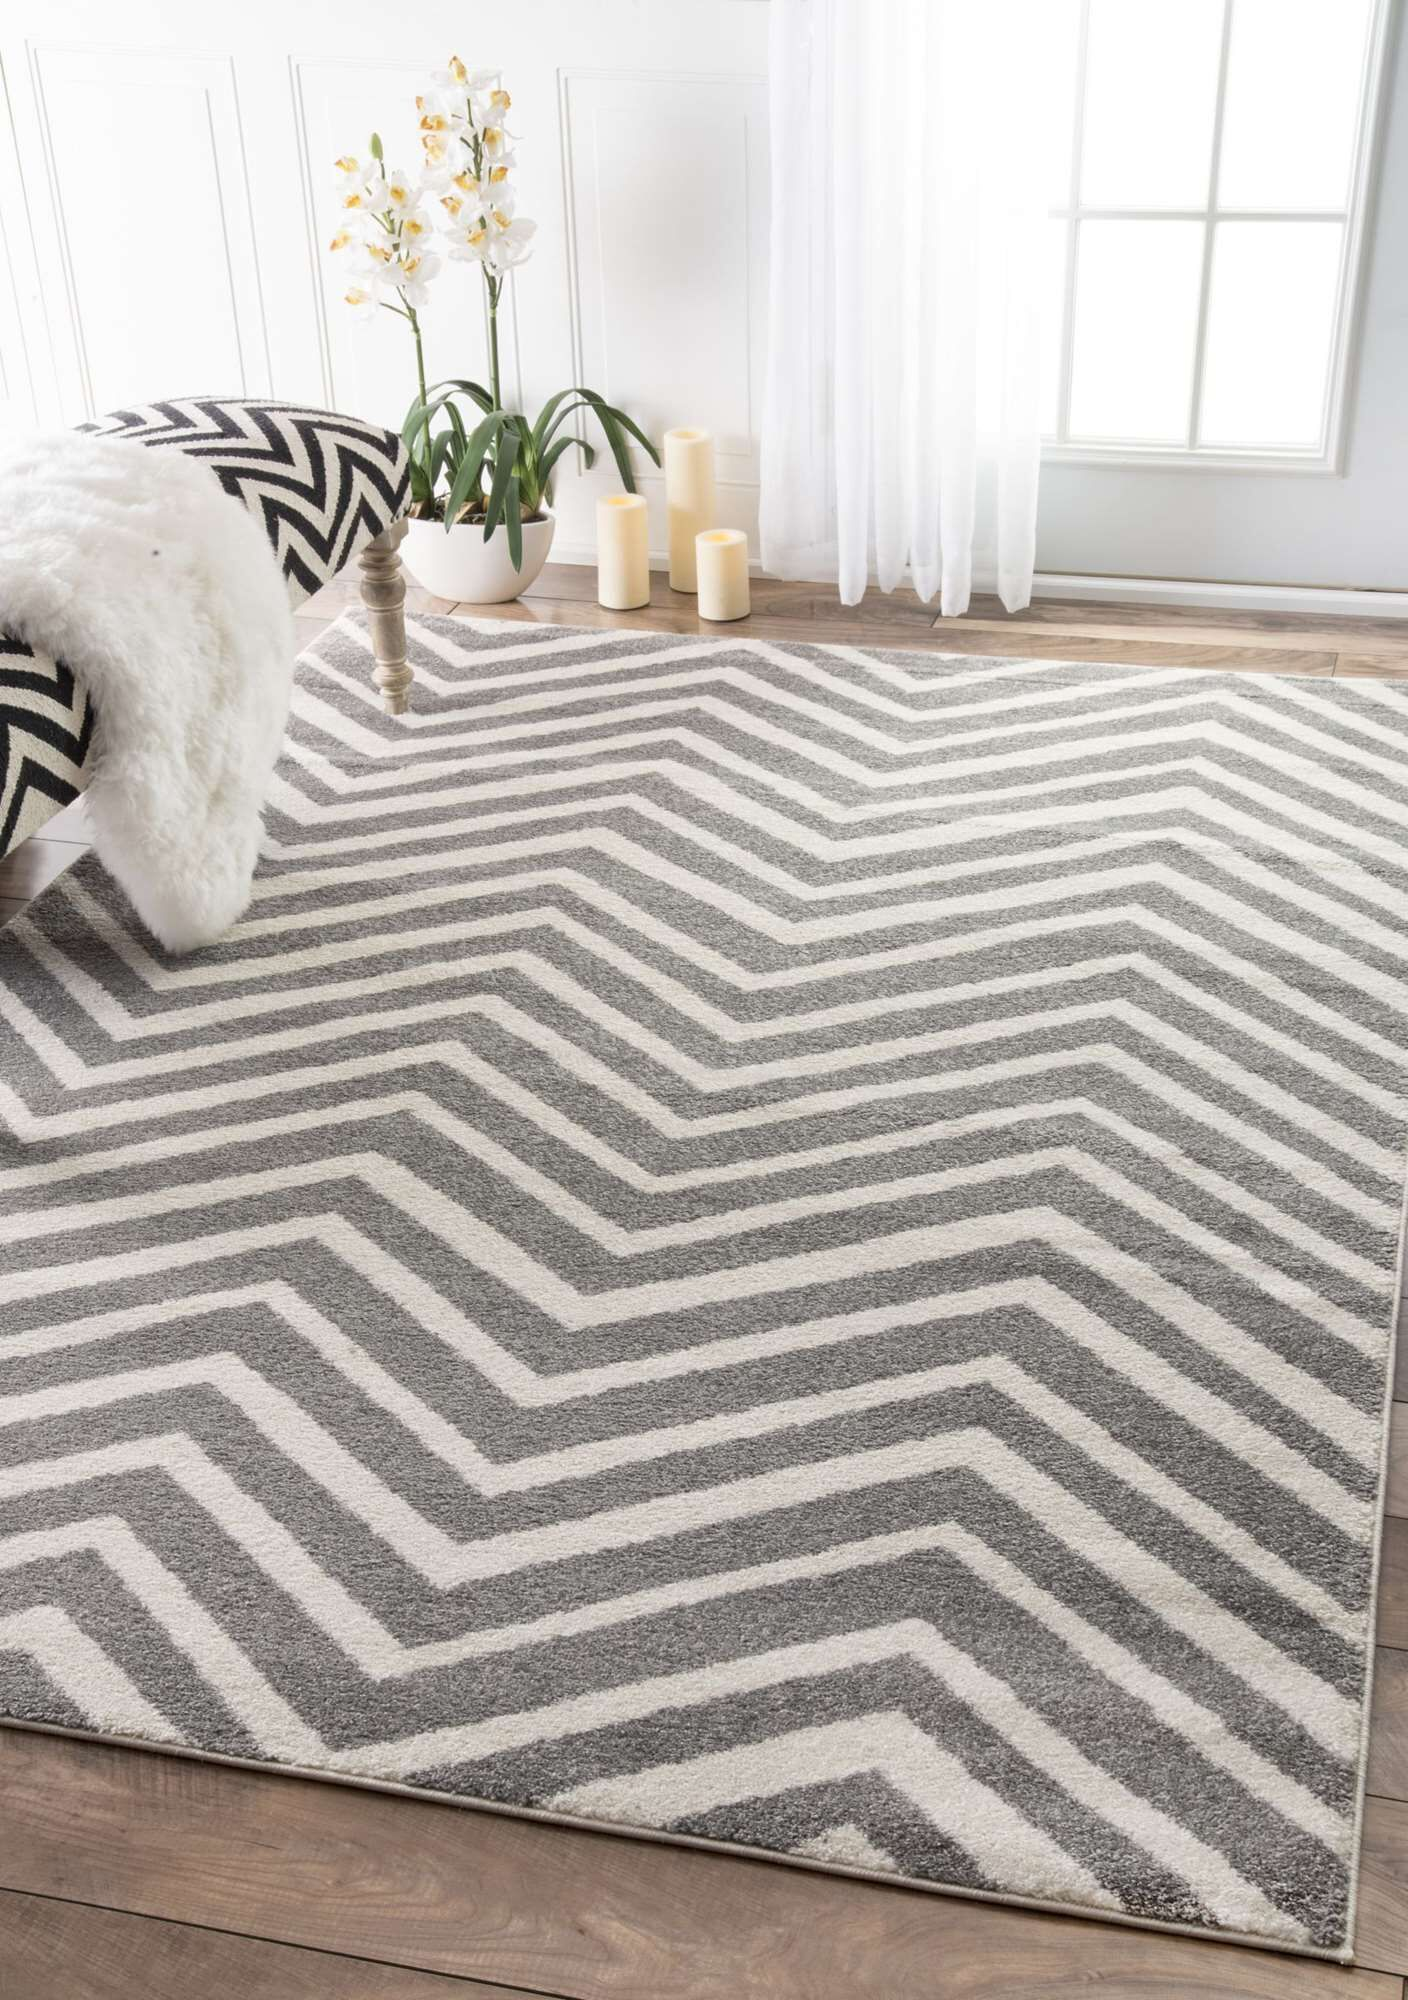 Nolting Gray/White Area Rug Rug Size: Rectangle 7'10